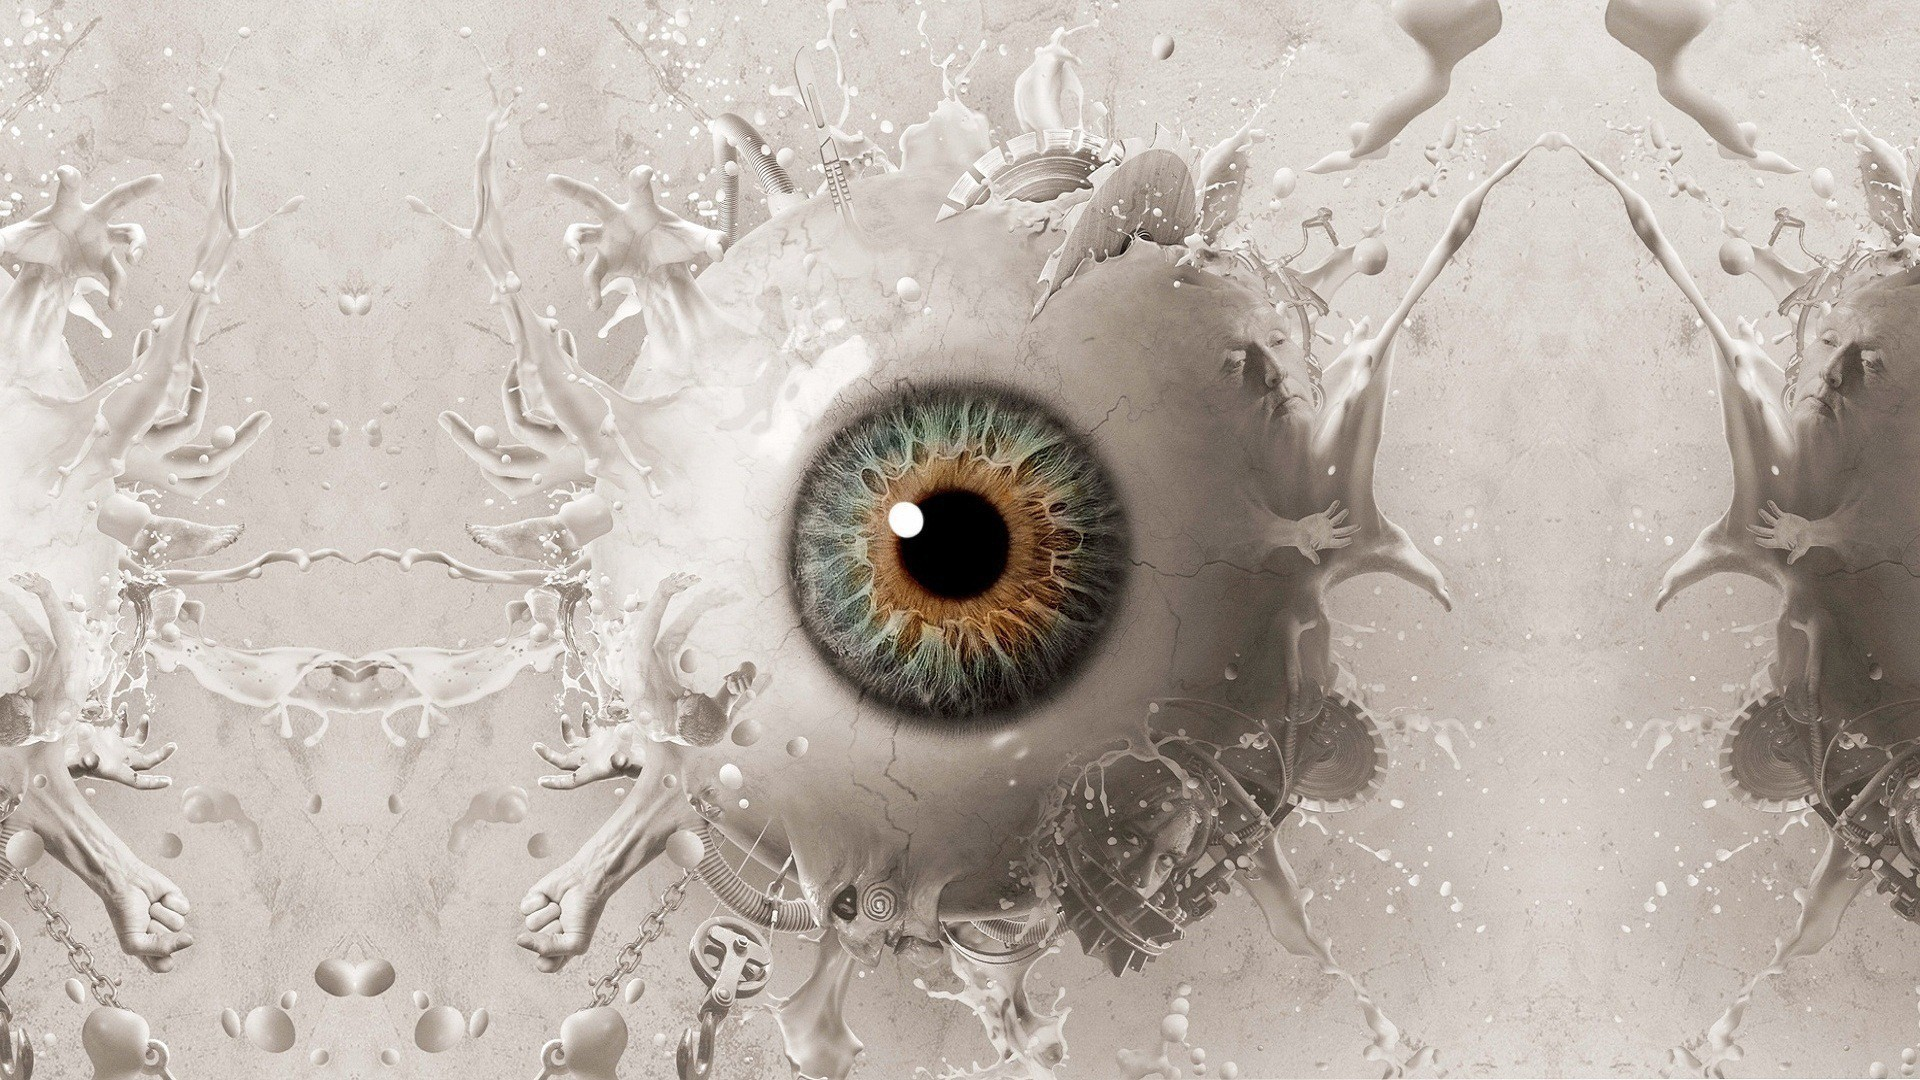 abstract eyes balls Saw HD Wallpaper